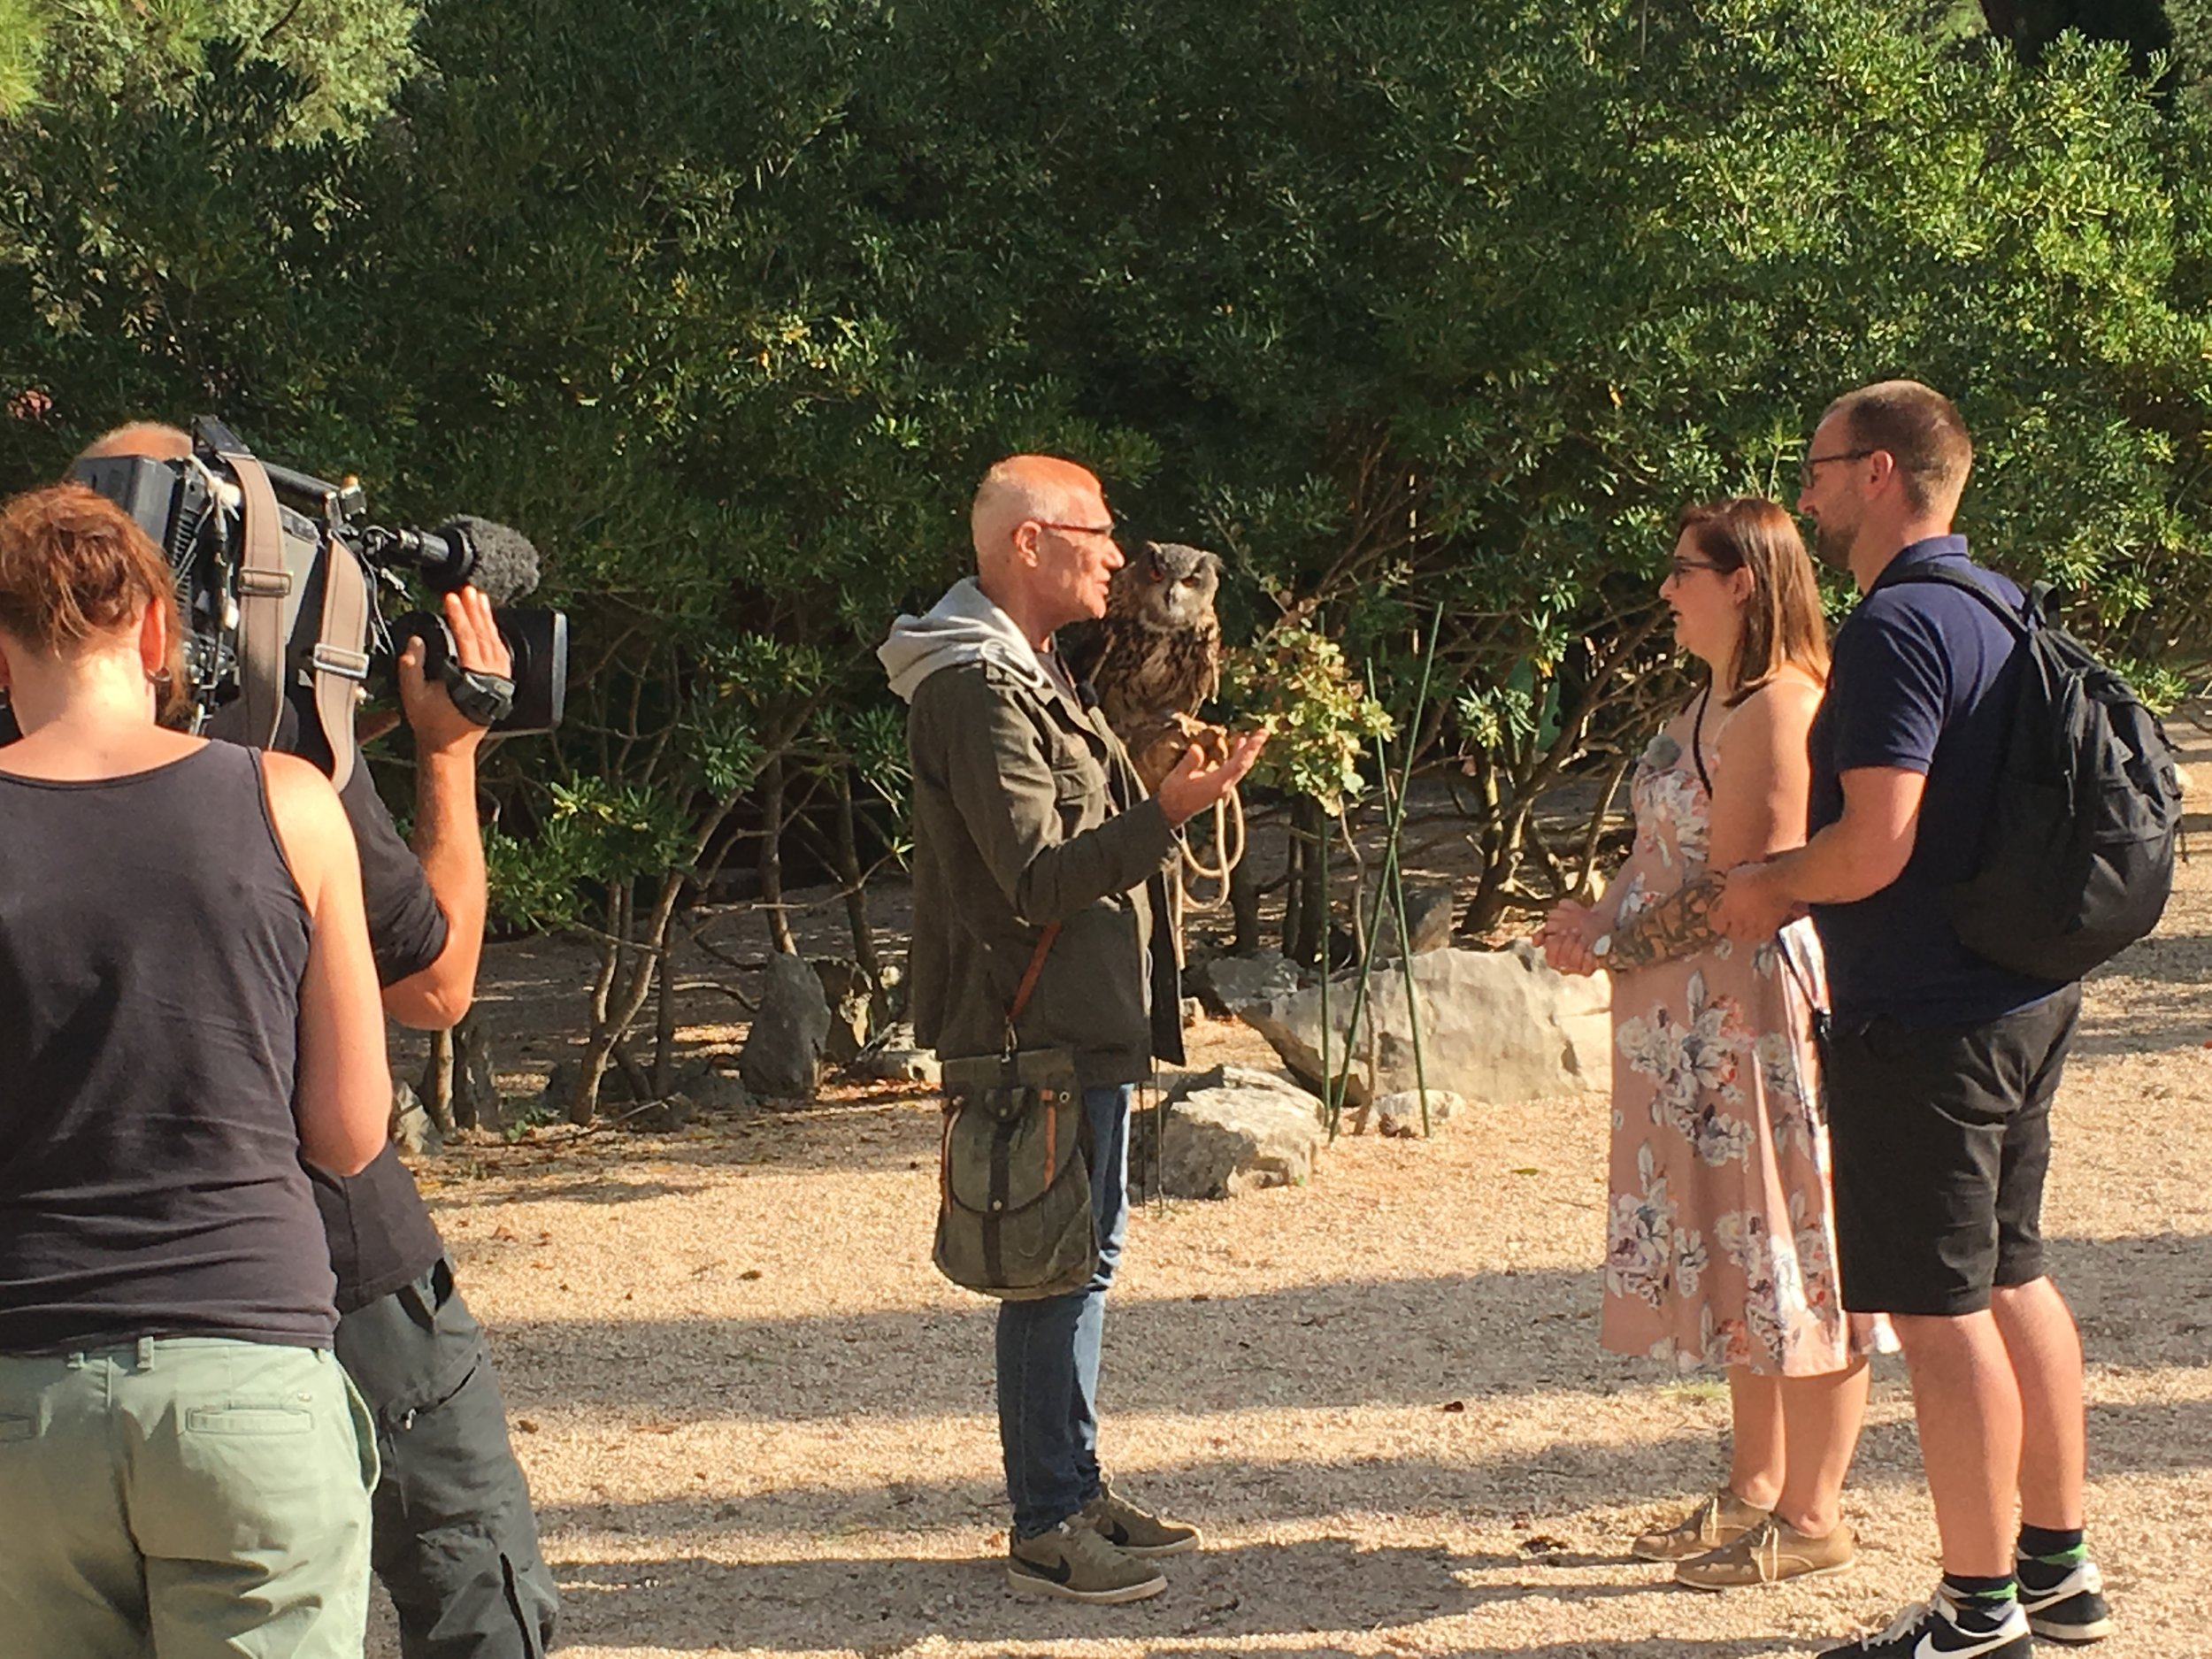 A German film crew was filming a TV show at the Falconry Center.